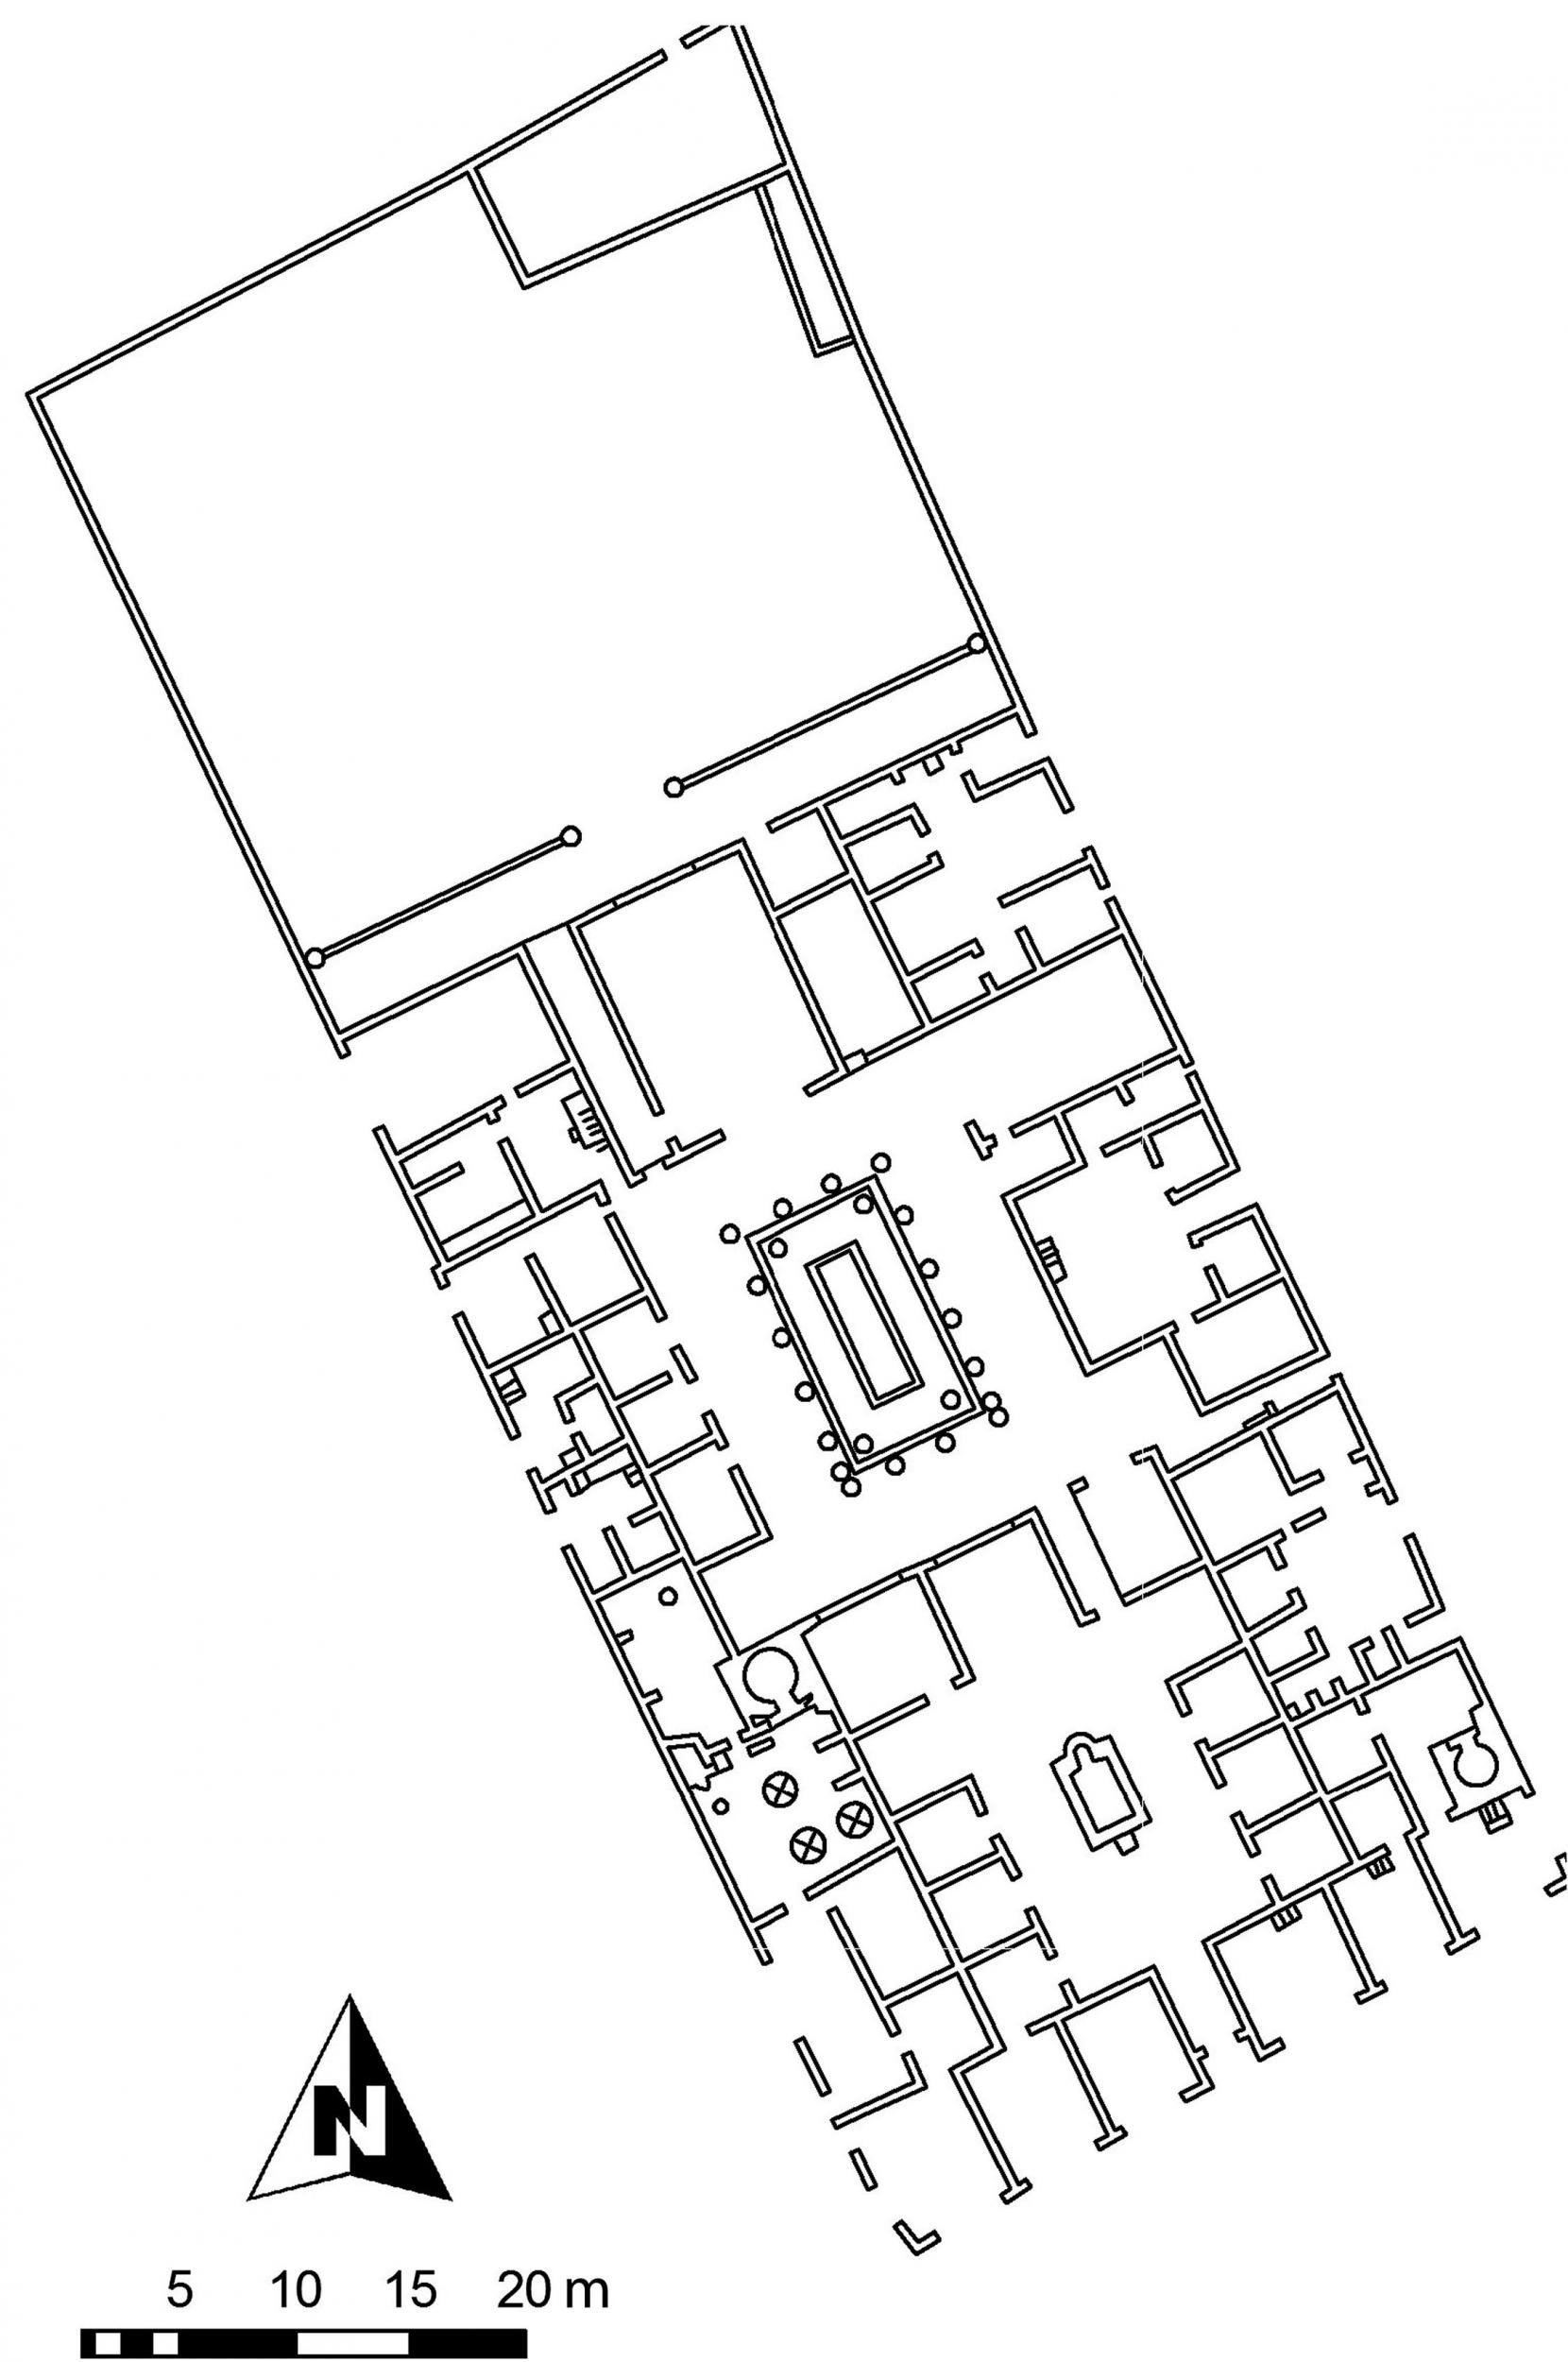 Fig. 2. Plan of Casa di Pansa (VI.6.1), Pompeii (courtesy E. Poehler, Pompeii Bibliography and Mapping Project).